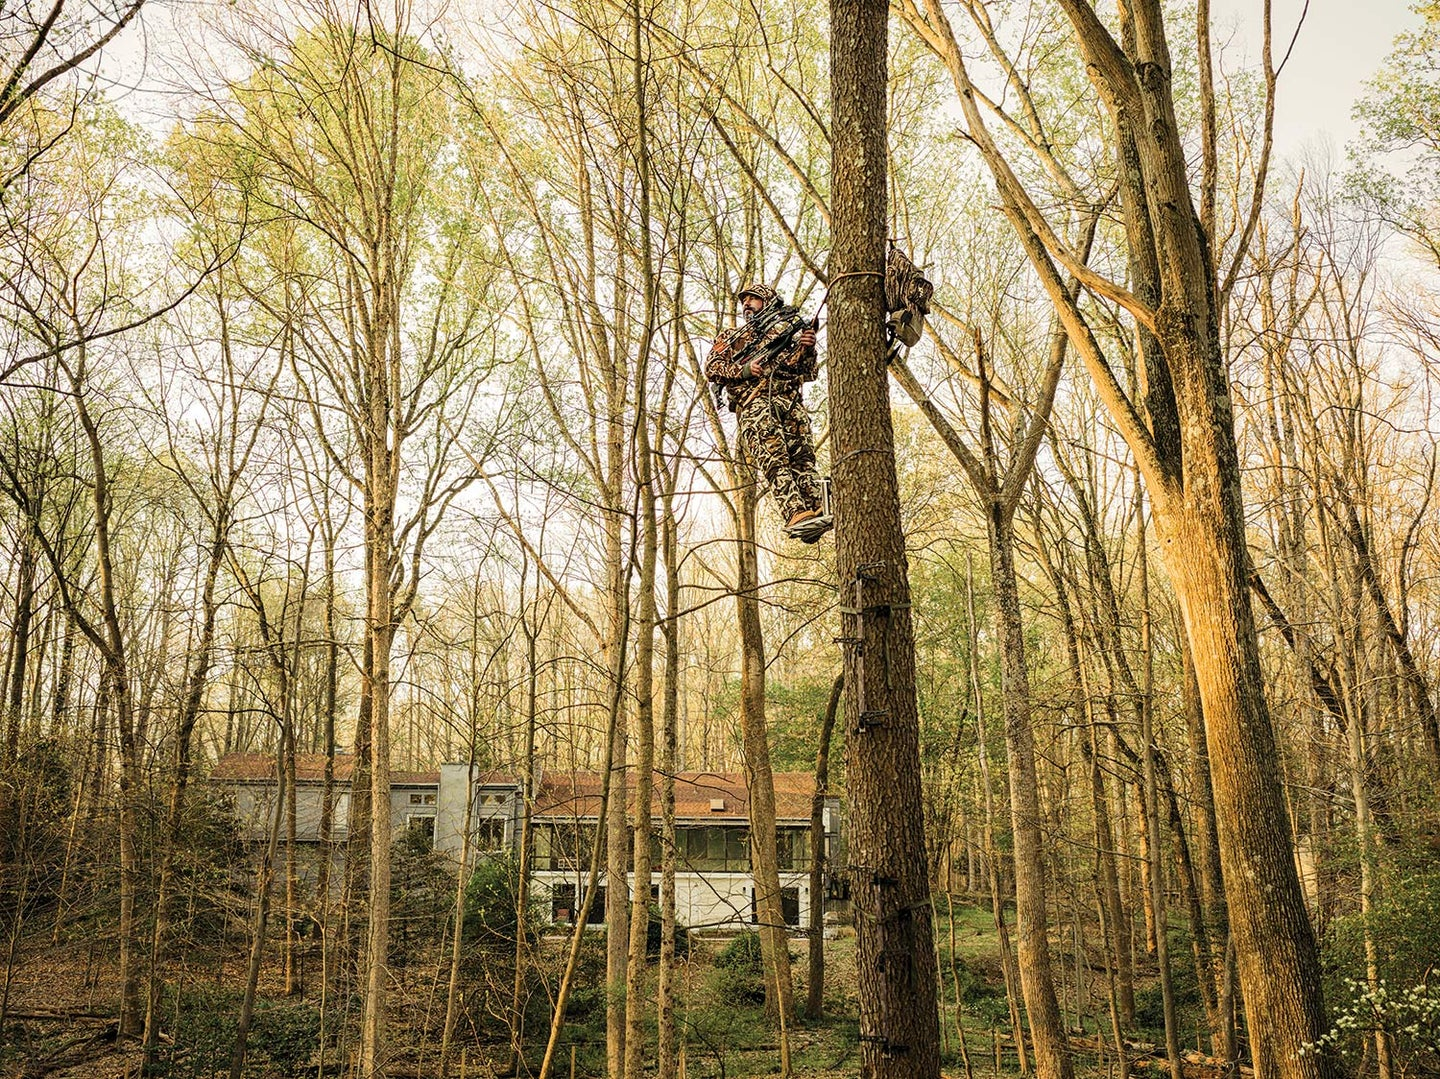 A hunter climbs up in a tree stand in his back yard.